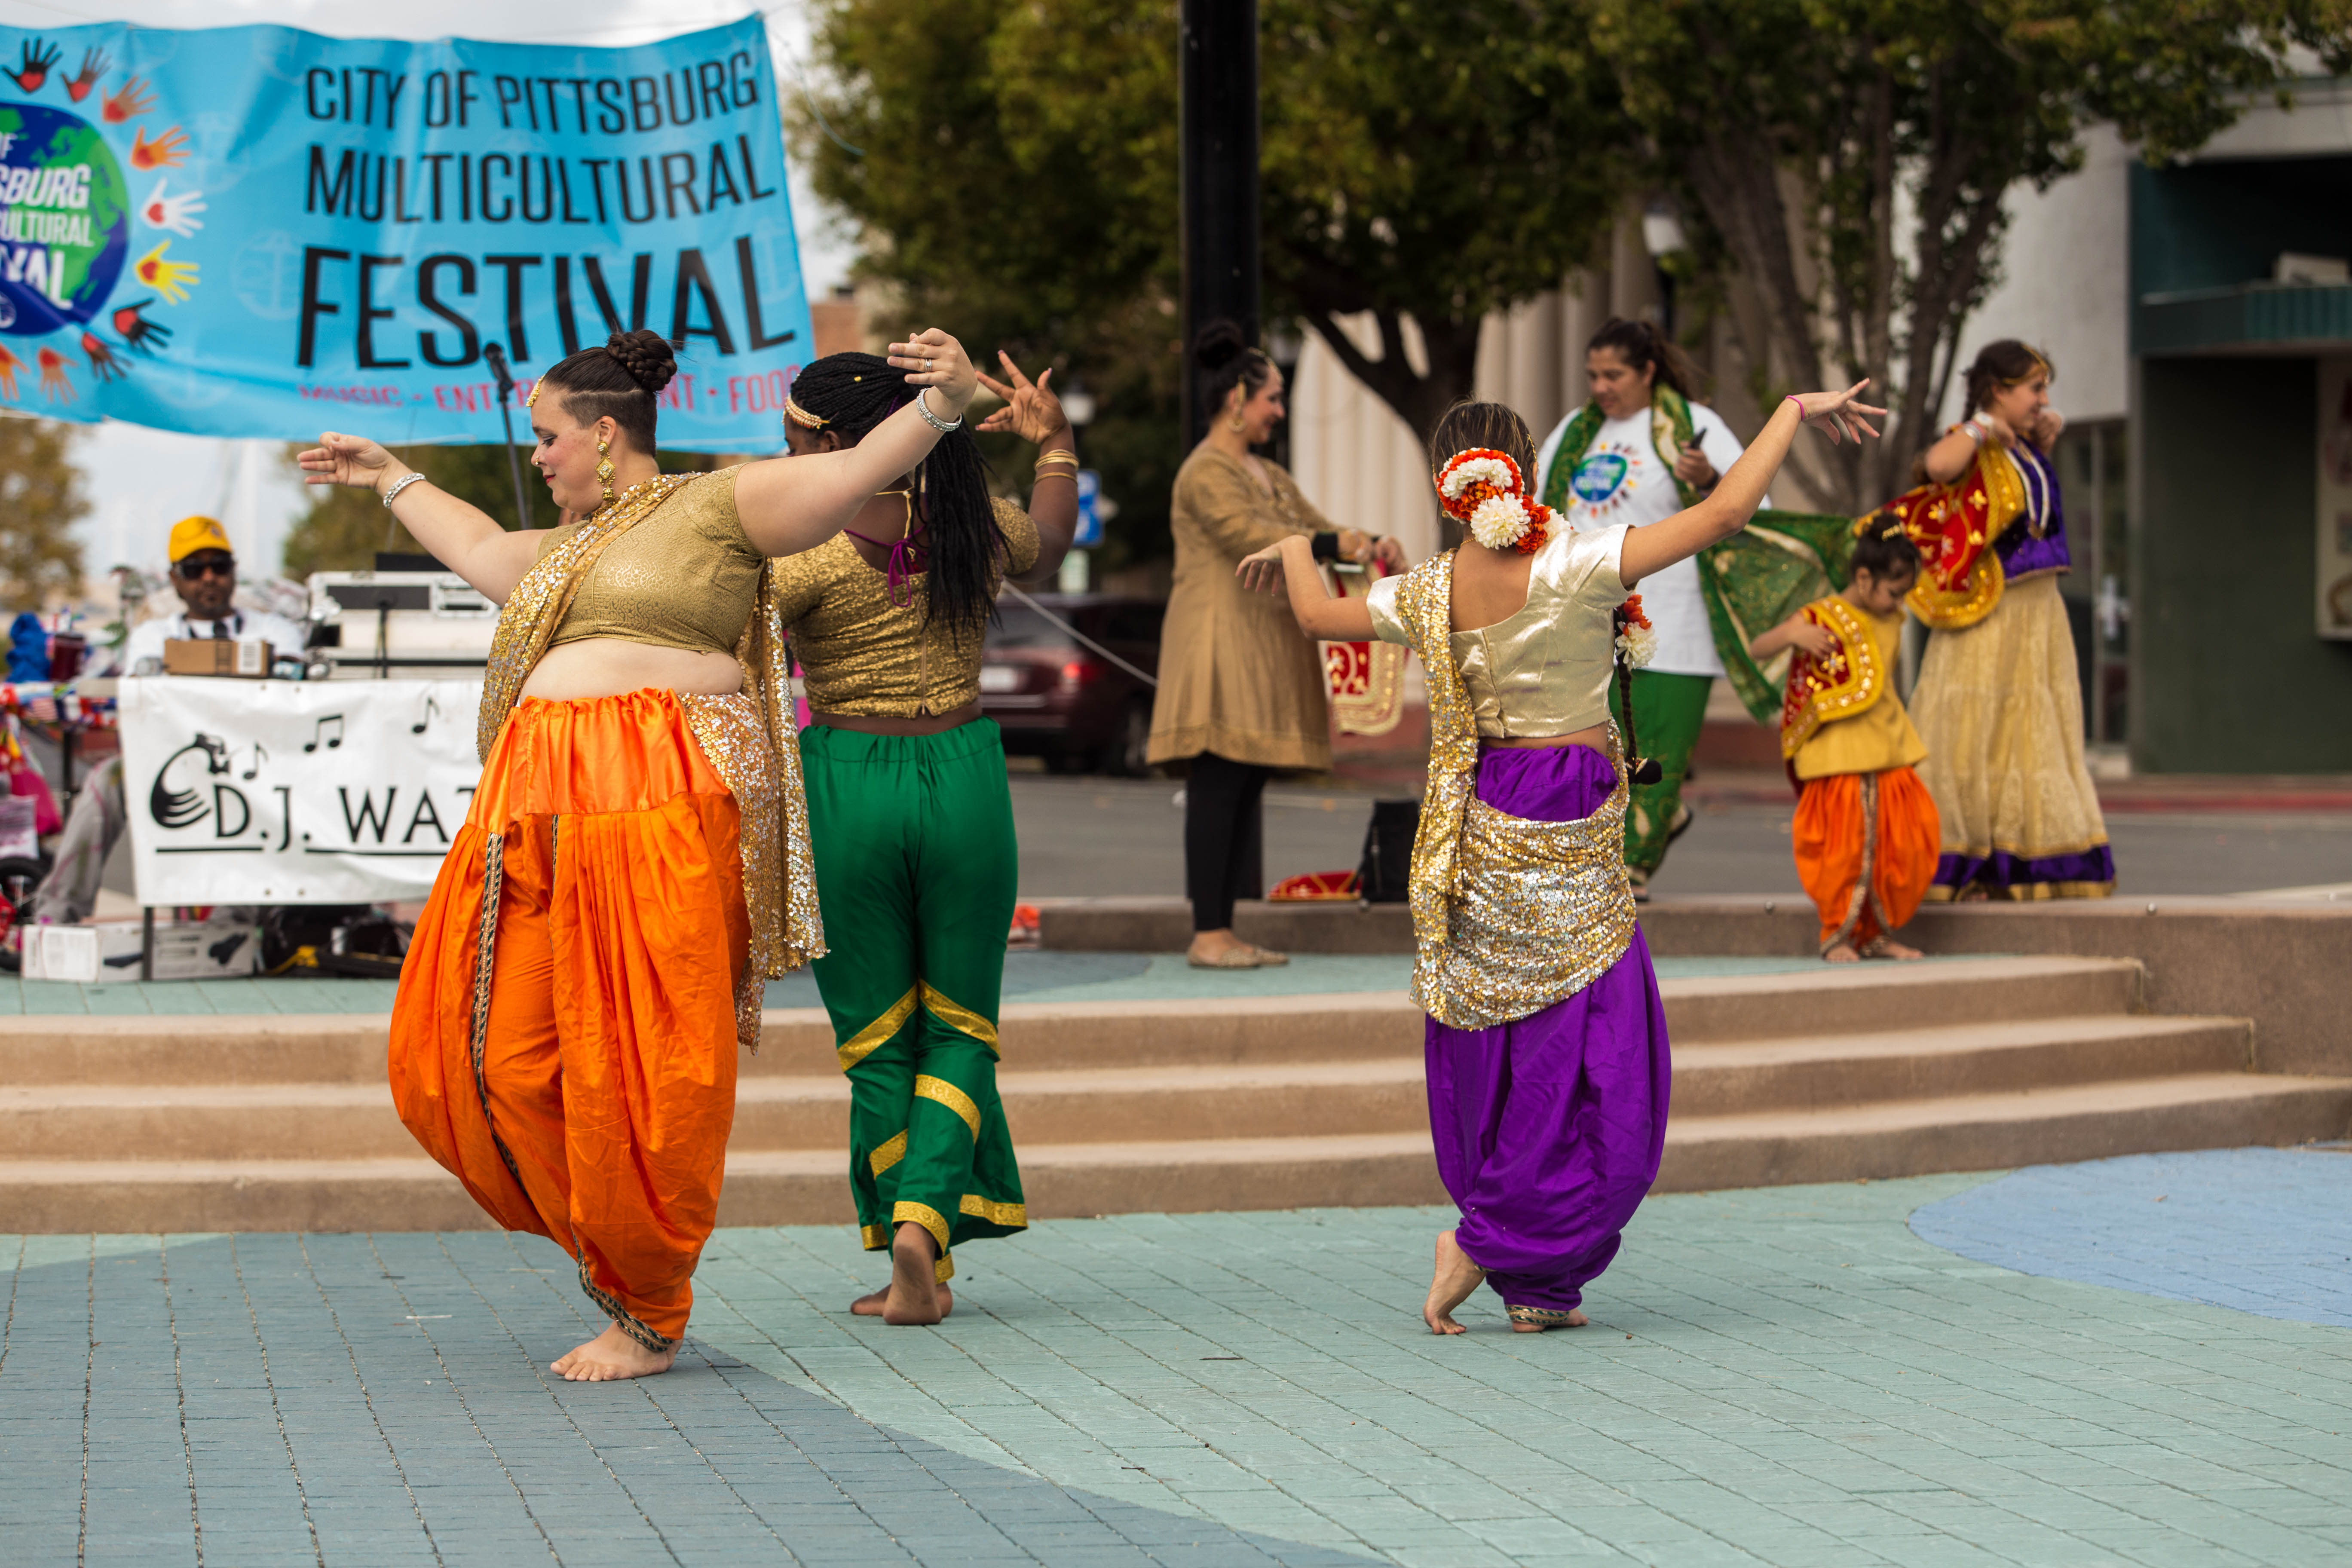 CITY_PITTSBURG_MULTICULTURAL_OCTOBER_2016 (691)